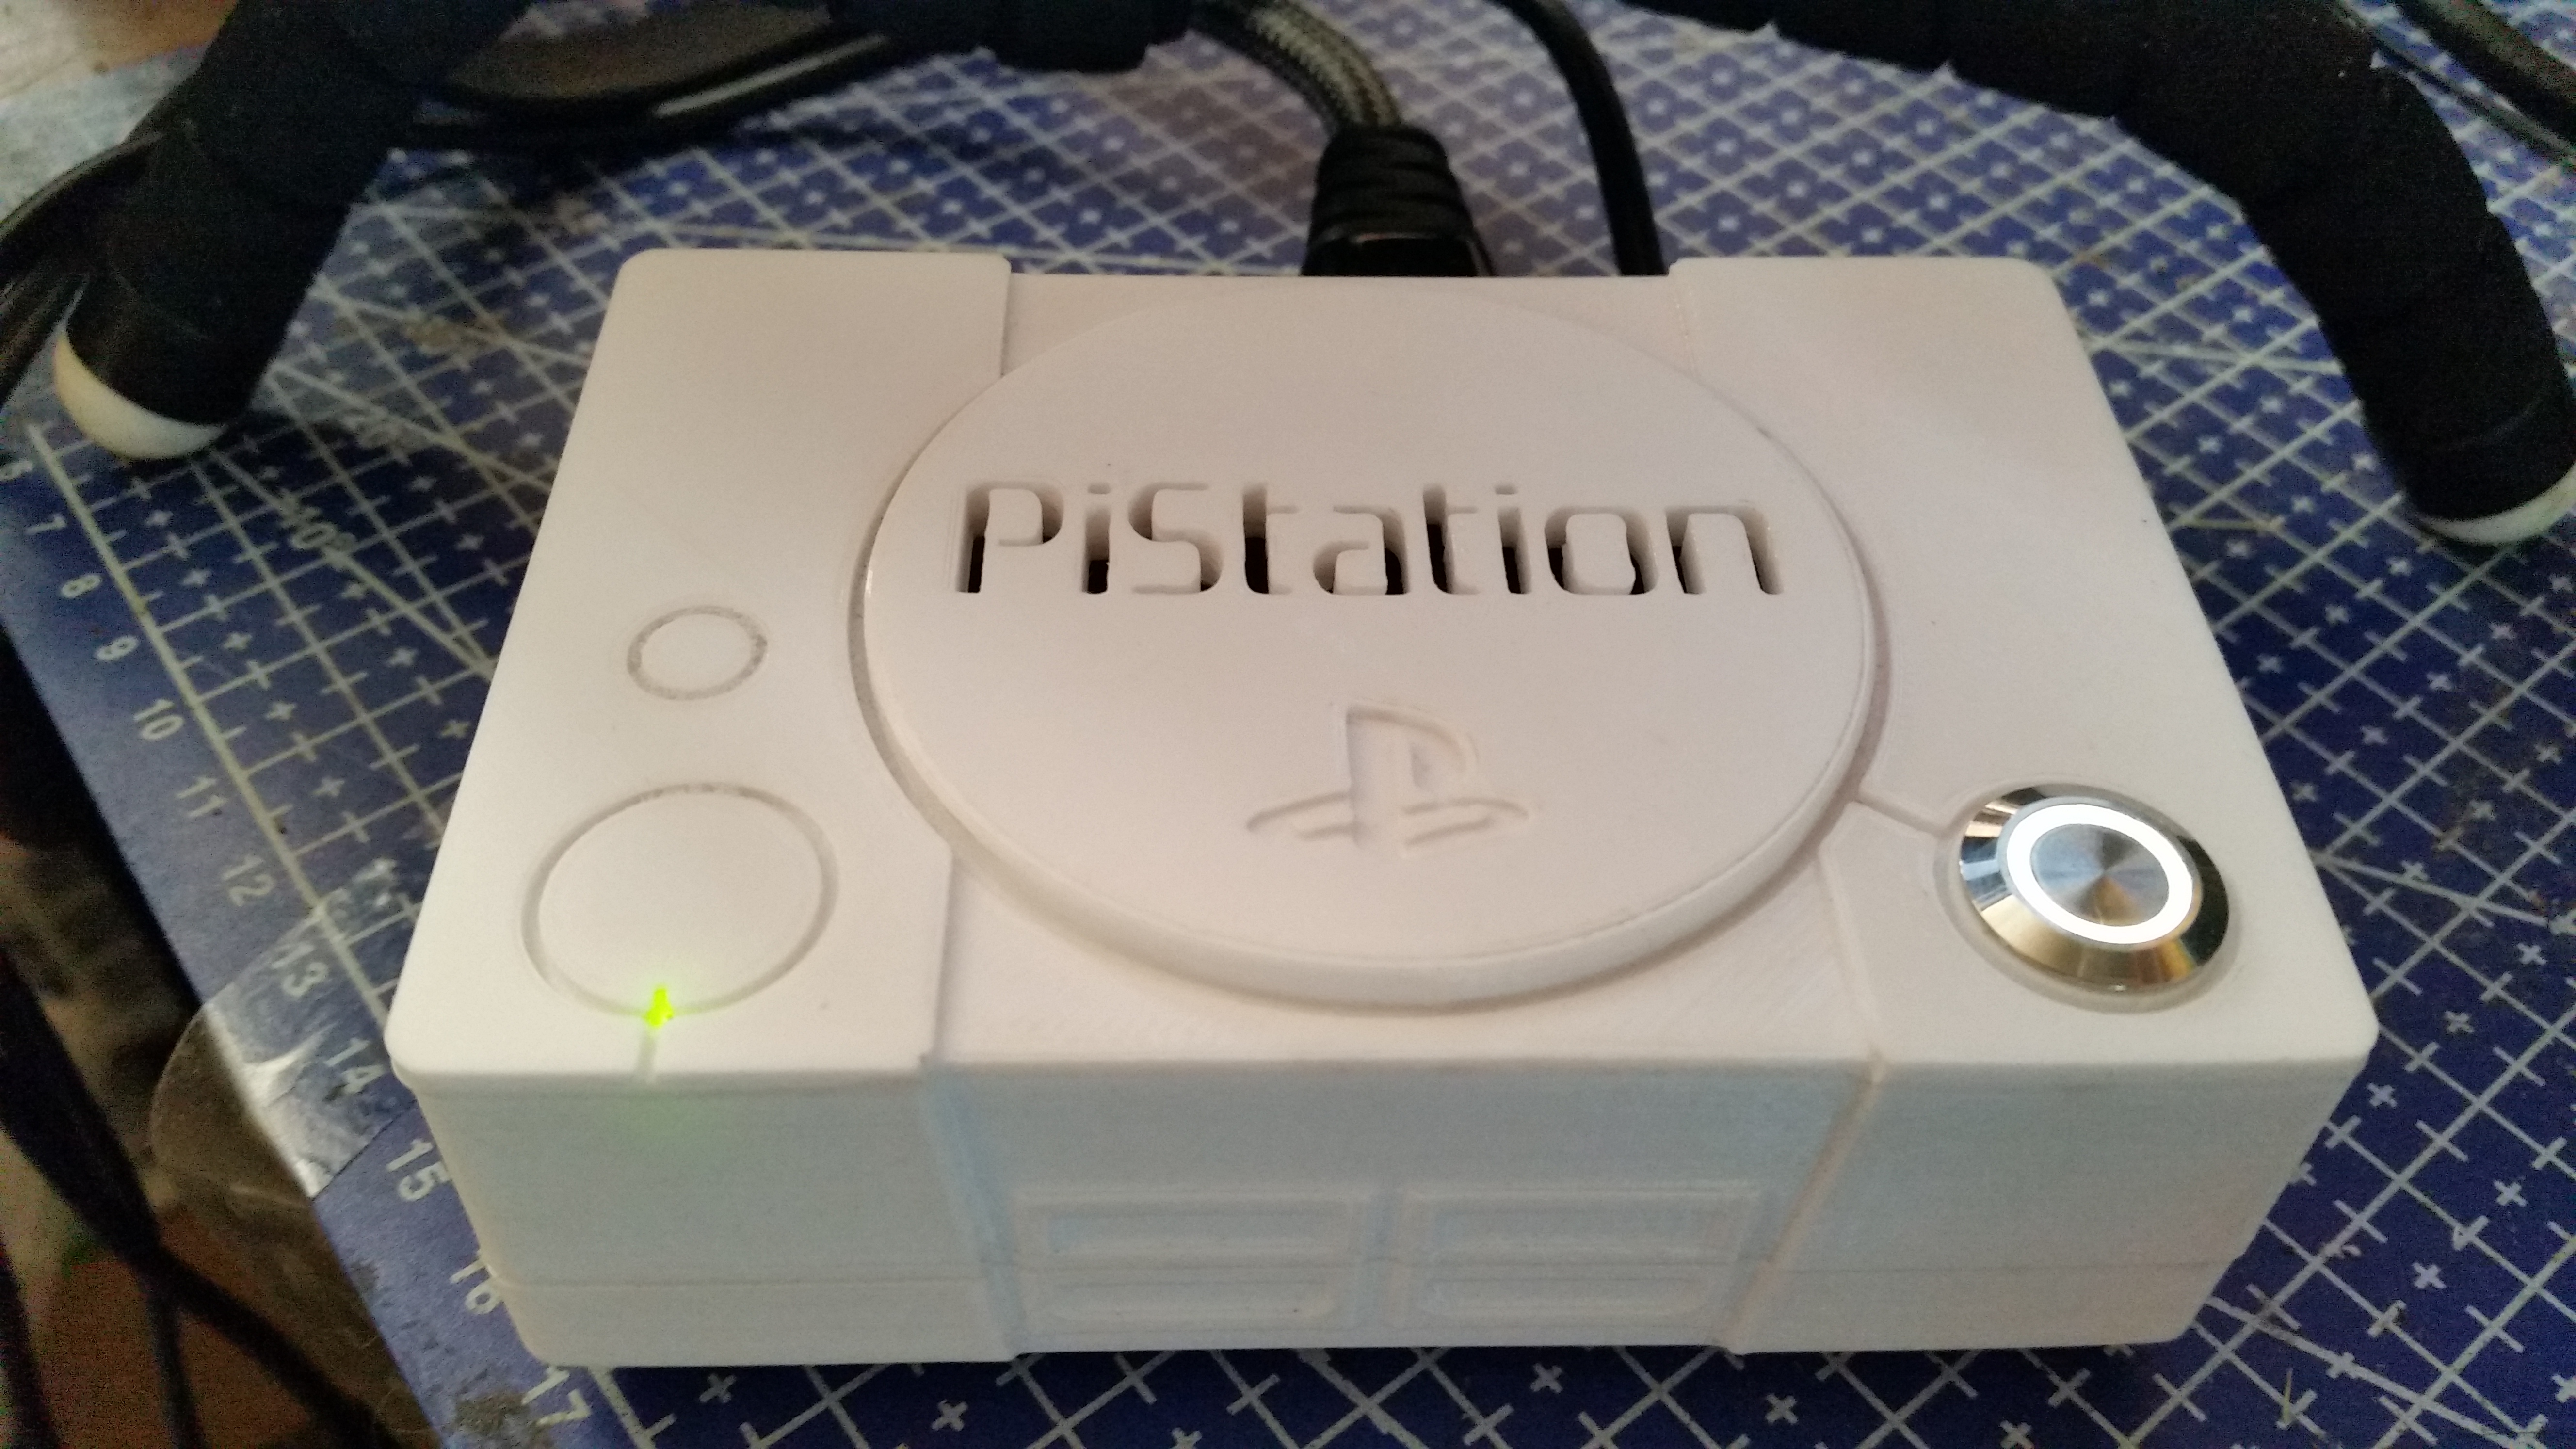 PiStation 3 - Retropie with PWM controlled Fan, Multi-use Button and